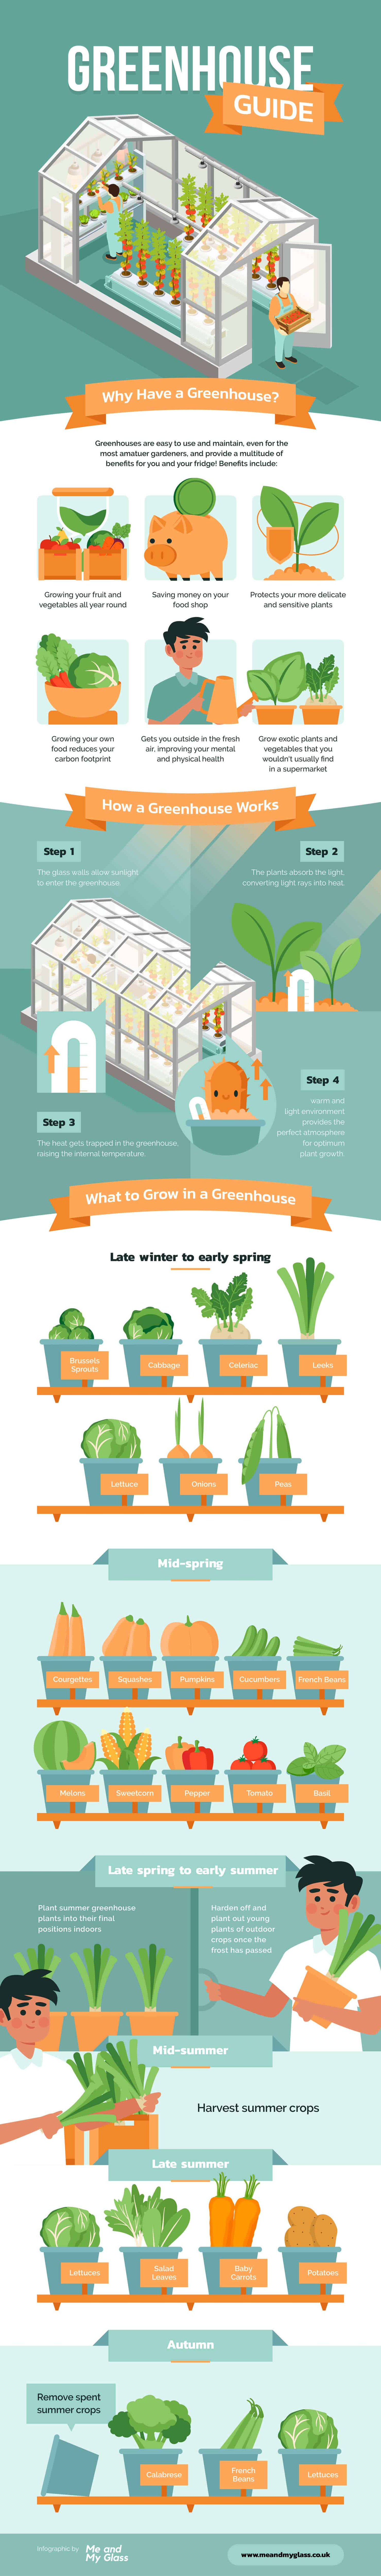 Greenhouse Guide - Grow your Own Food